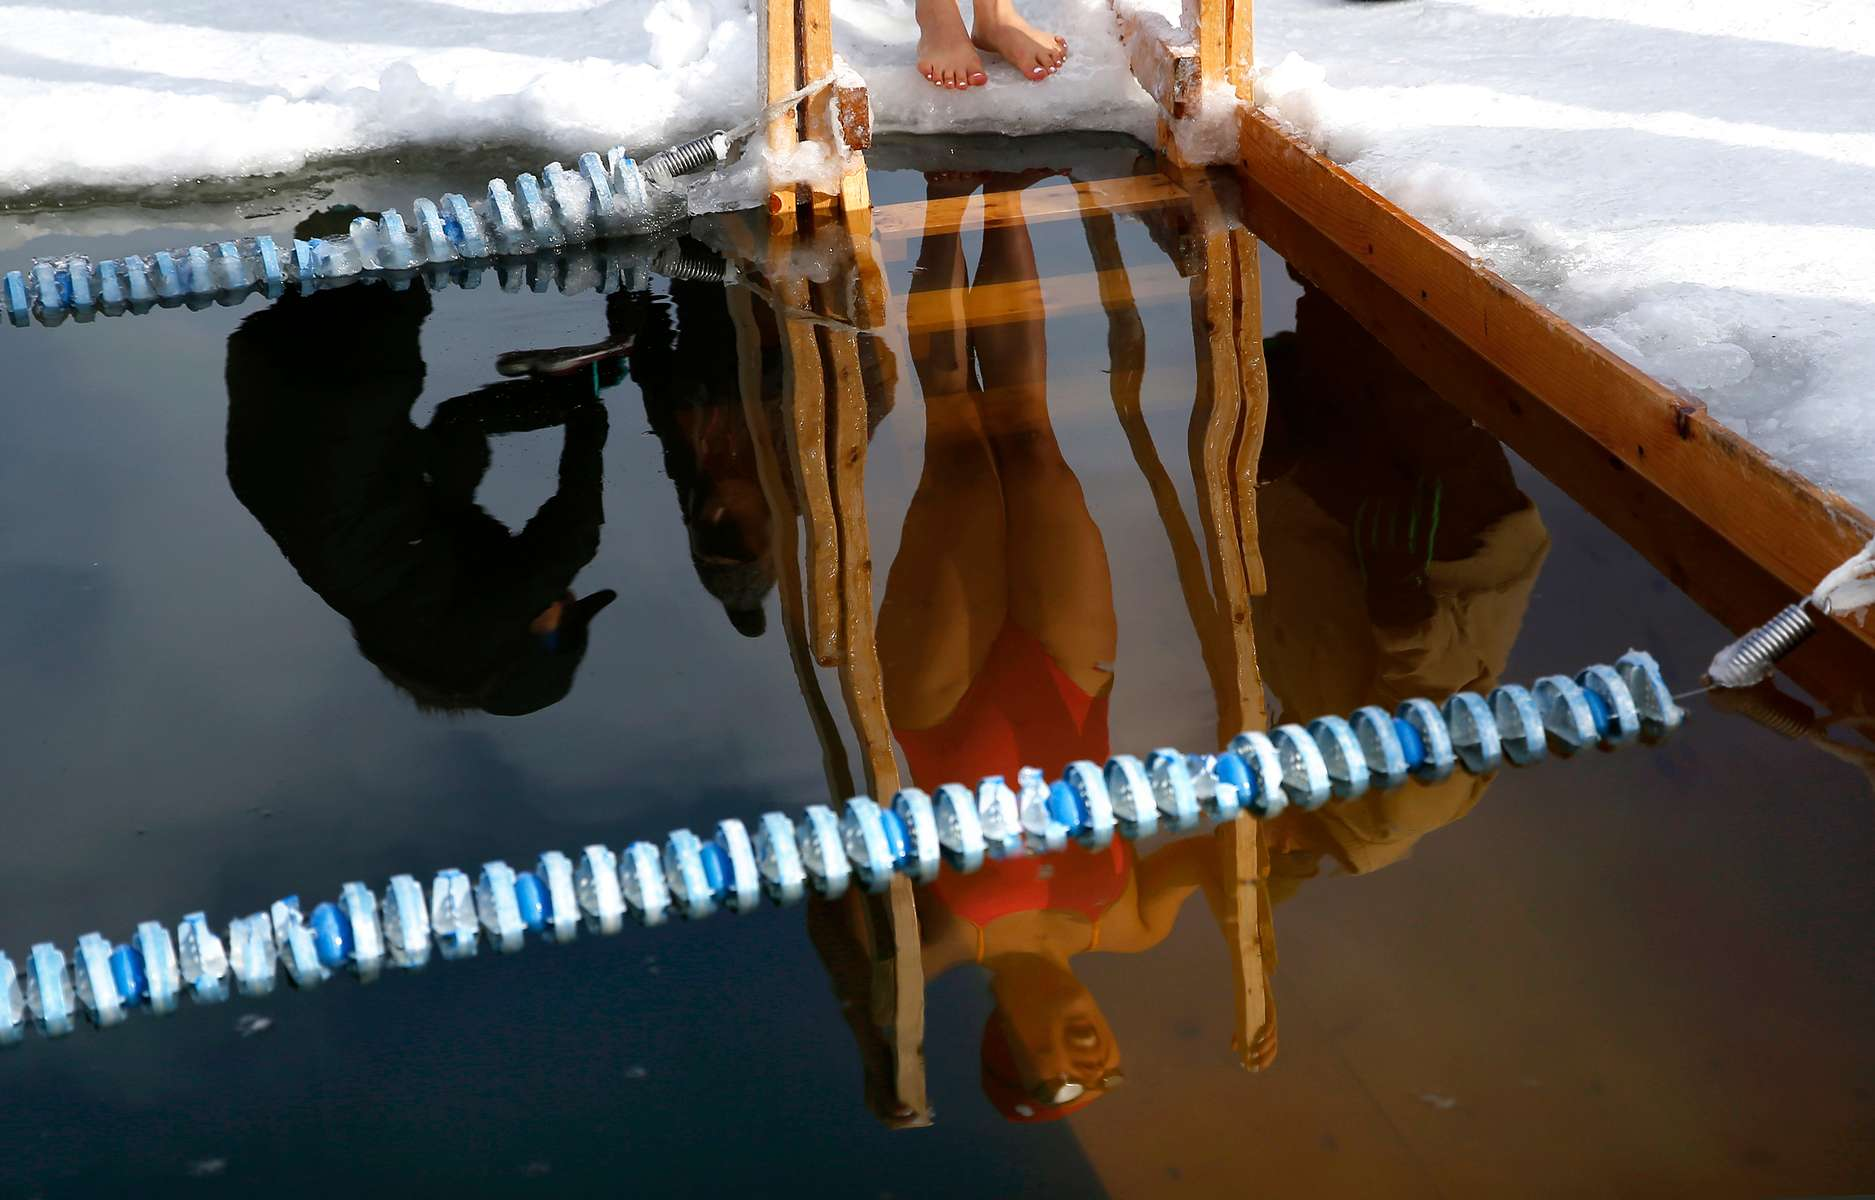 Newport, VT - 3/1/20 -  Qing Li, of Chicago stands ready at the steps of the pool as she waits to compete in the 100 meter freestyle in 28 degree water during the Winter Swim Festival at Lake Memphremagog.